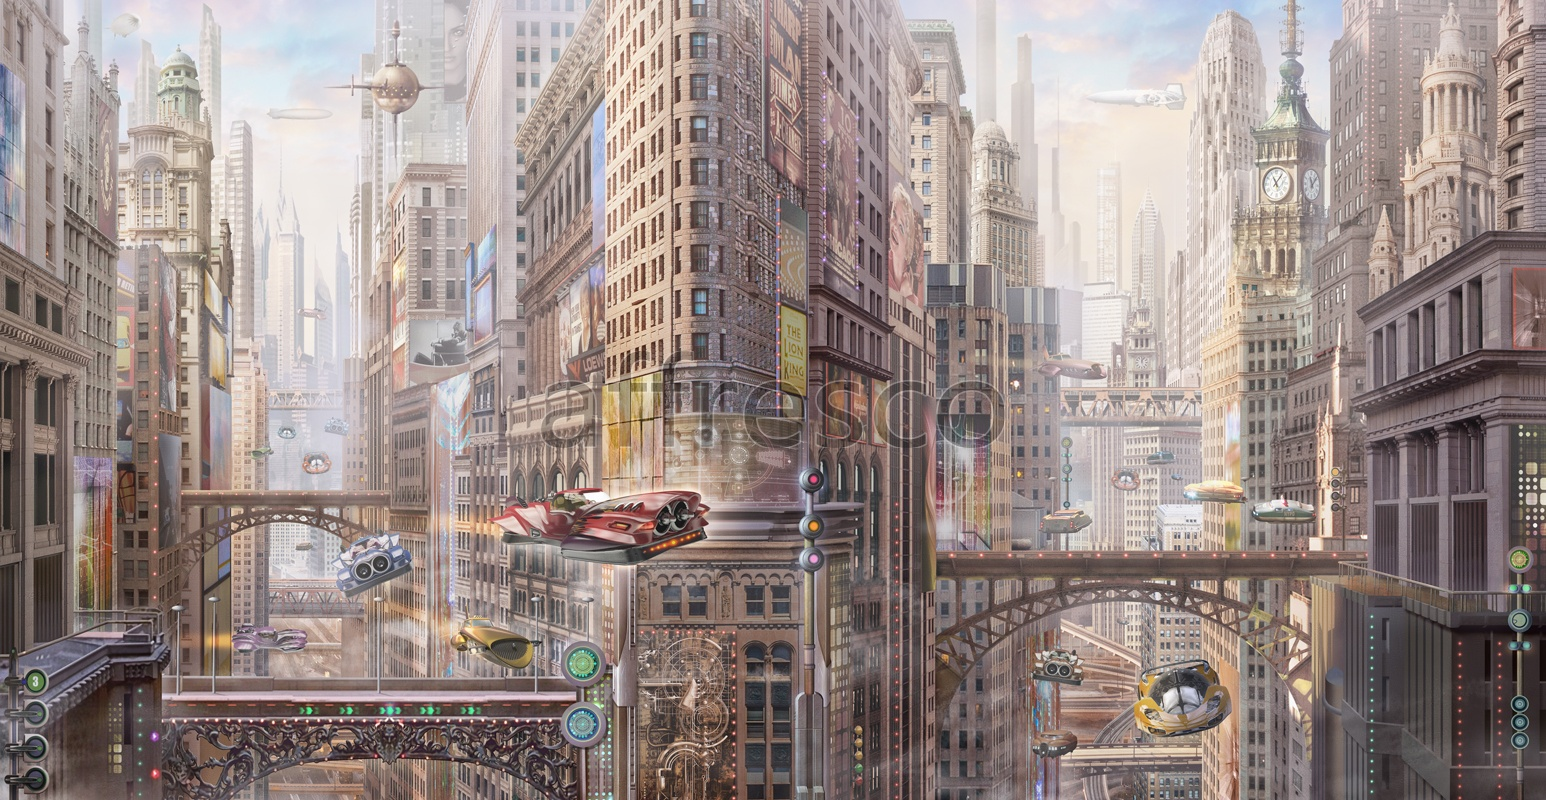 6700 | The best landscapes | Megacity of the future | Affresco Factory